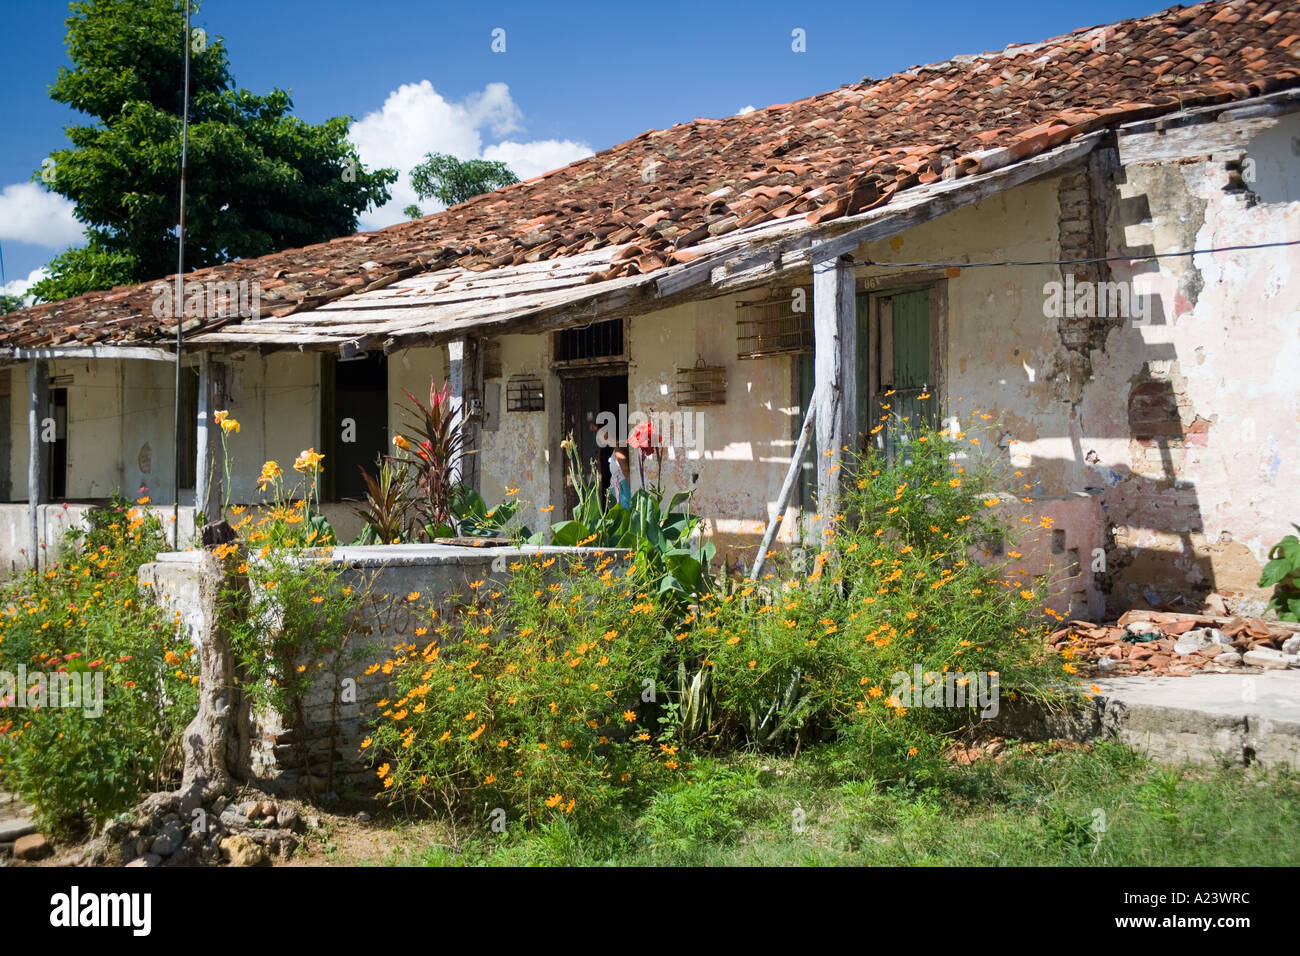 Worker 39 S Houses On The Old Colonial Sugar Plantation Stock Photo Royalty Free Image 5941819